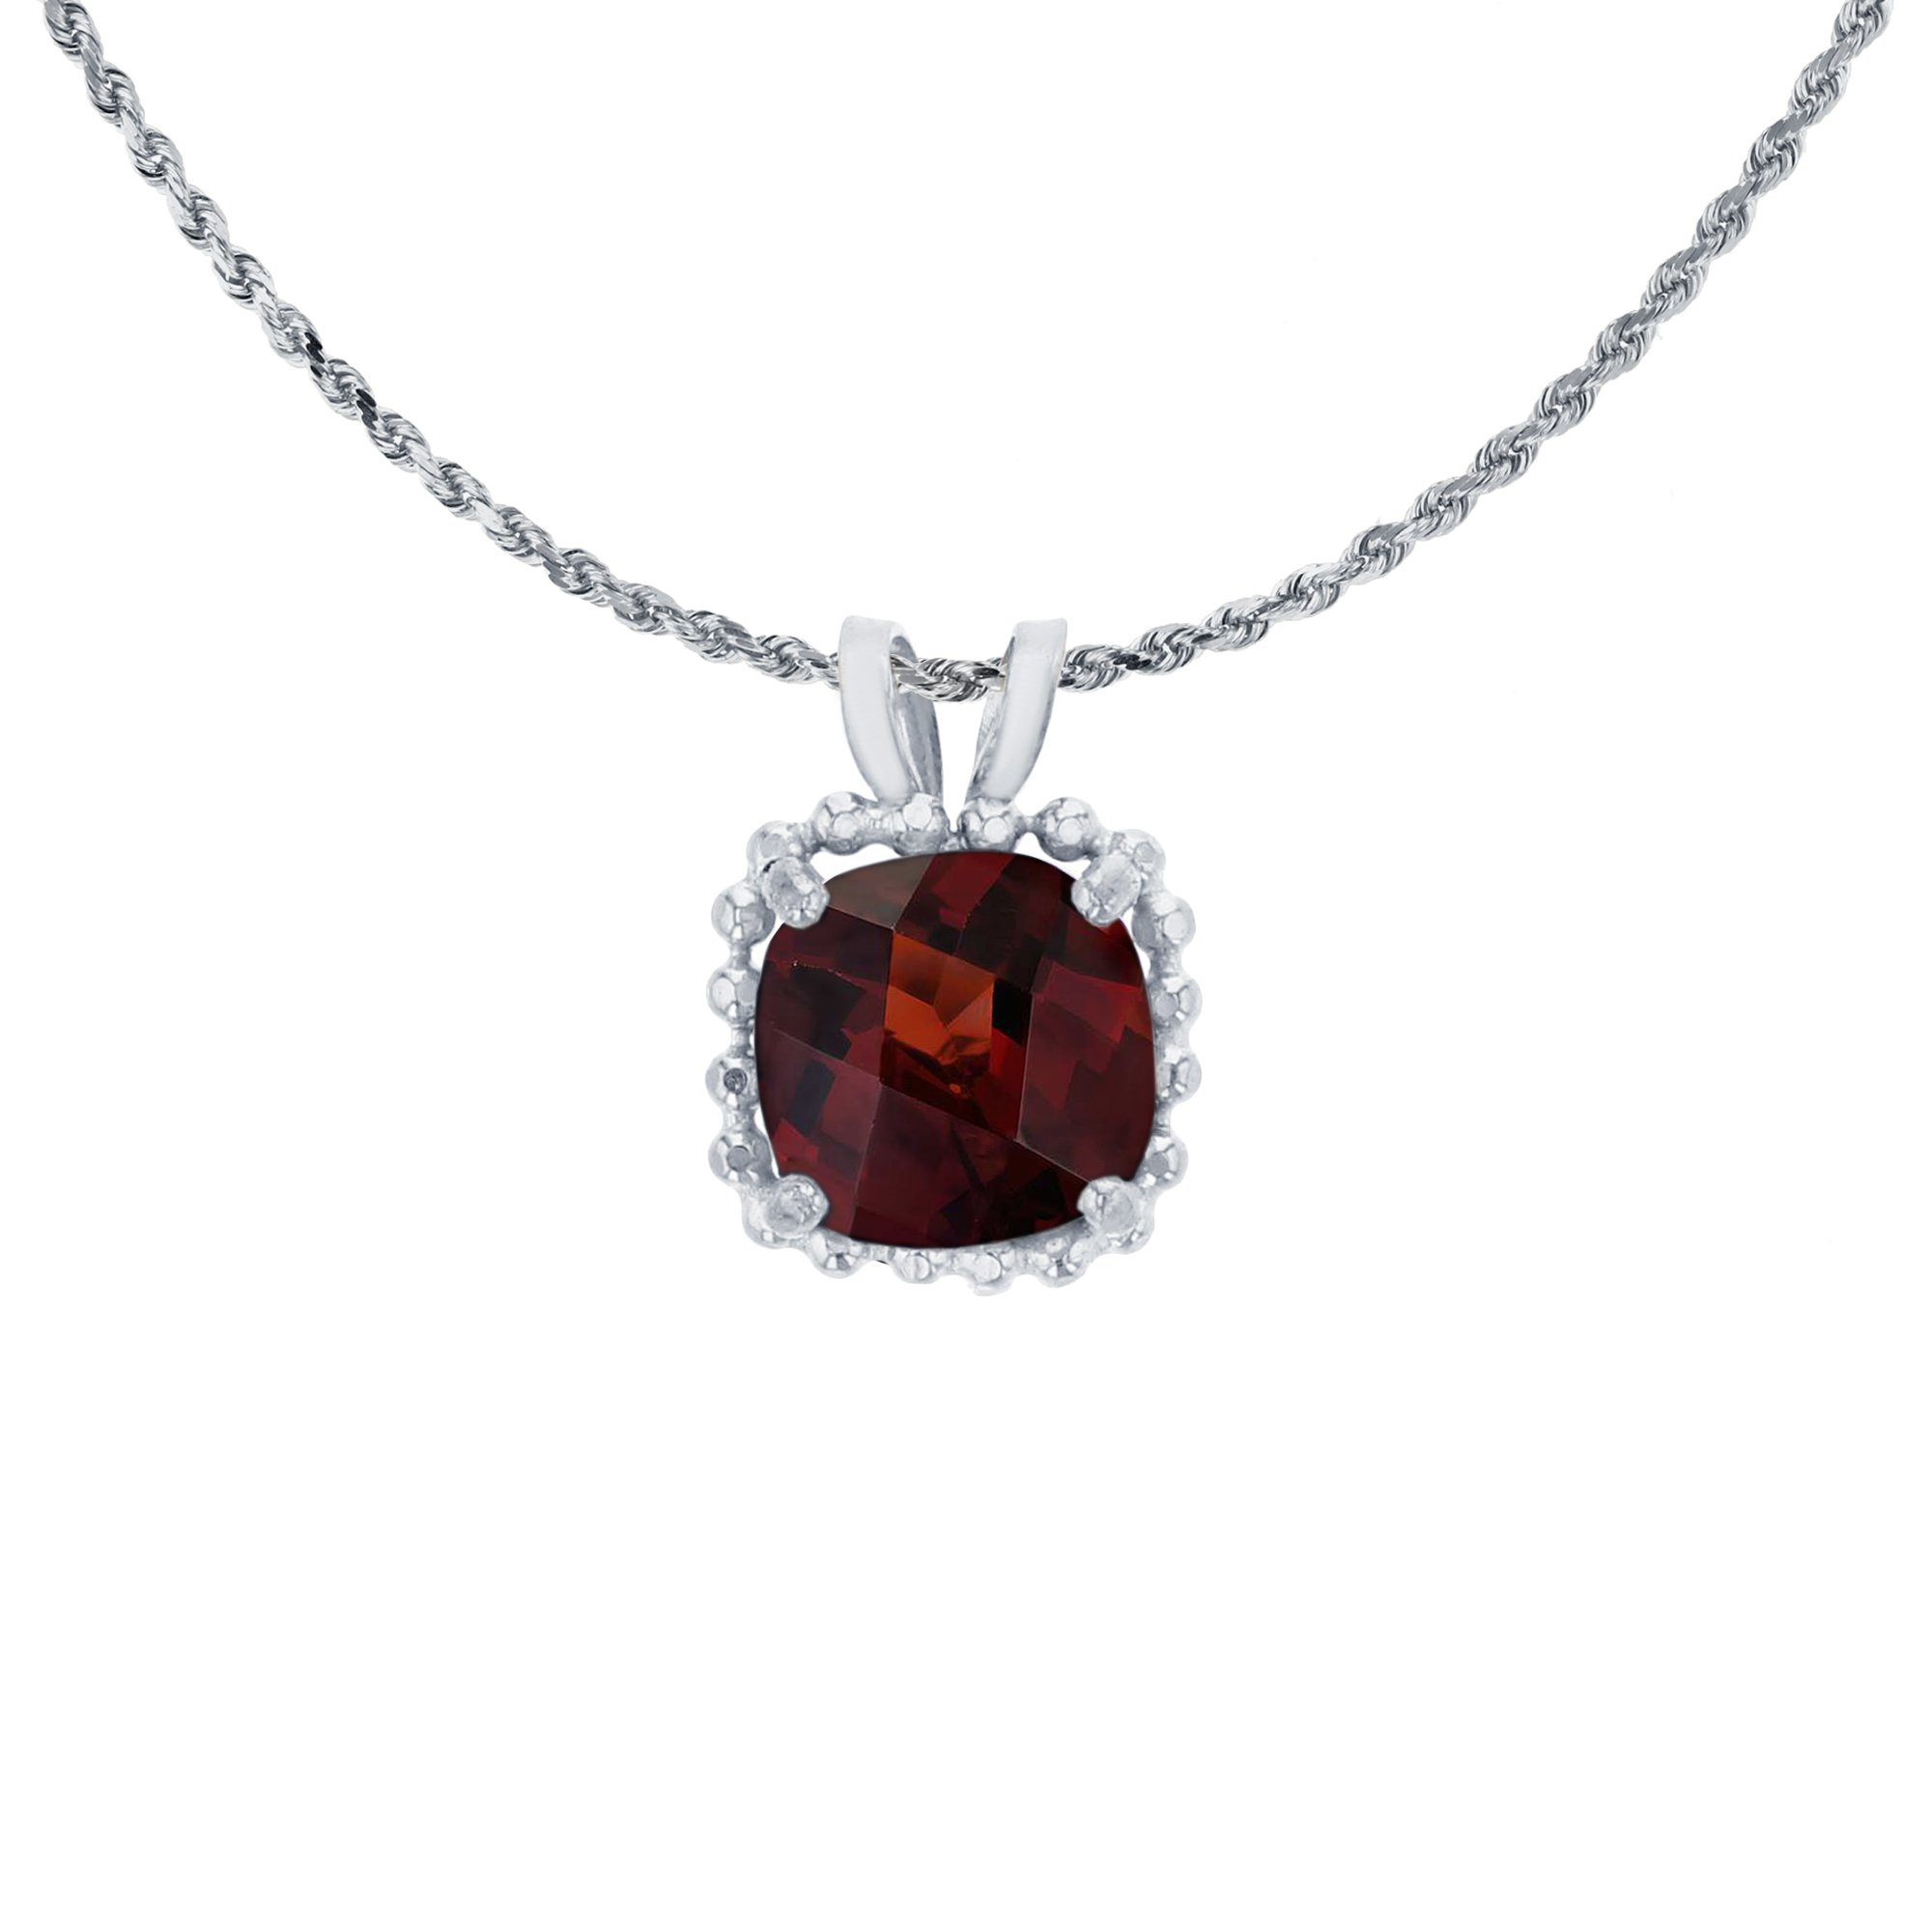 14K White Gold 6mm Cushion Cut Garnet Bead Frame Rabbit Ear 18'' Rope Chain Necklace by Decadence